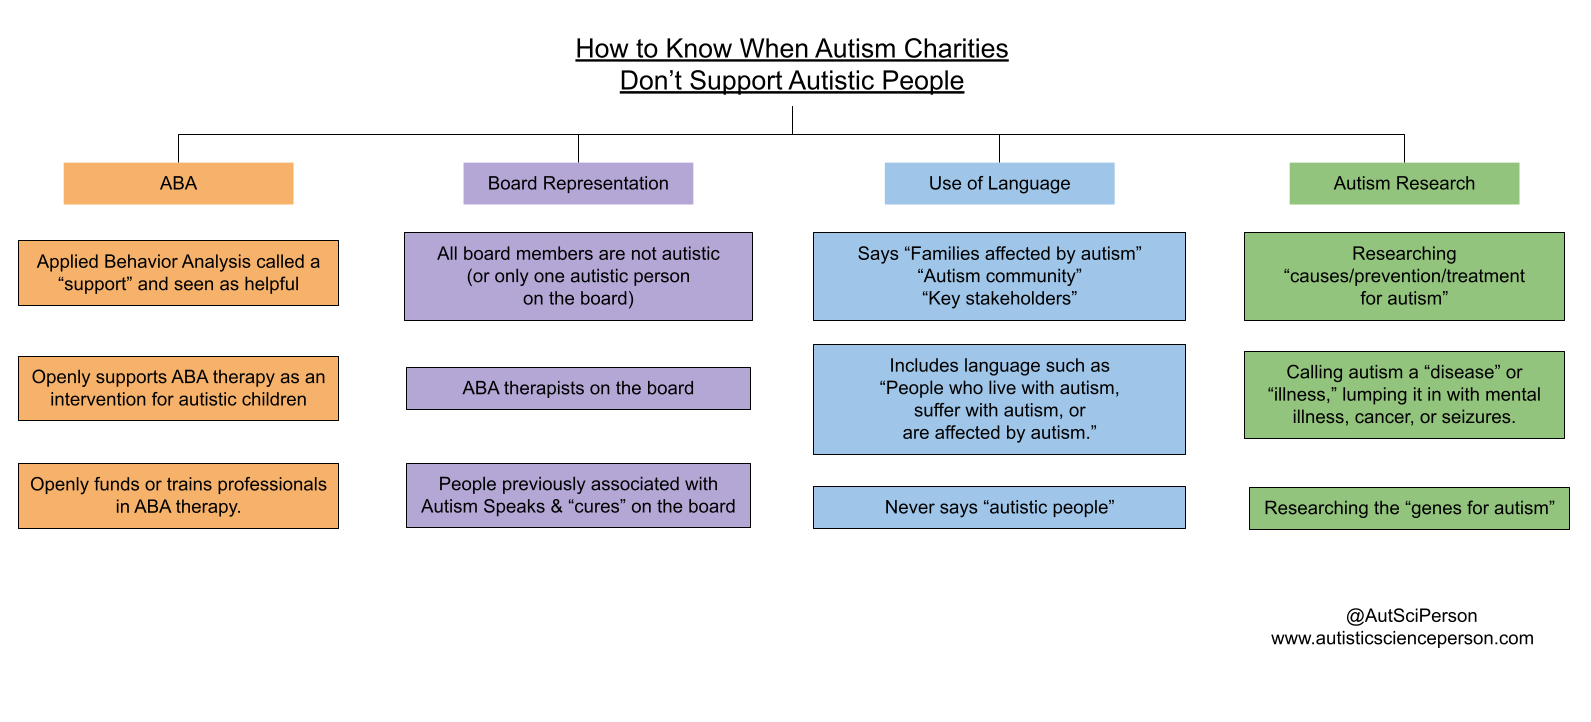 """Title - How to Know When Autism Charities  Don't Support Autistic People. 4 different columns with different colored text boxes. Orange column: ABA - Applied Behavior Analysis called a """"support"""" and seen as helpful. Openly supports ABA therapy as an intervention for autistic children. Openly funds or trains professionals in ABA therapy.  Purple column: Board Representation - All board members are not autistic (or only one autistic person on the board). ABA therapists on the board. People previously associated with Autism Speaks and """"cures"""" on the board.   Blue column: Use of Language. Says """"Families affected by autism"""" or """"Autism community"""" or """"Key stakeholders."""" Includes language such as """"People who live with autism, suffer with autism, or are affected by autism."""" Never says """"autistic people.""""  Green column: Autism research. Researching """"causes/prevention/treatment for autism."""" Calling autism a """"disease"""" or """"illness,"""" lumping it in with mental illness, cancer. Research autism genes."""